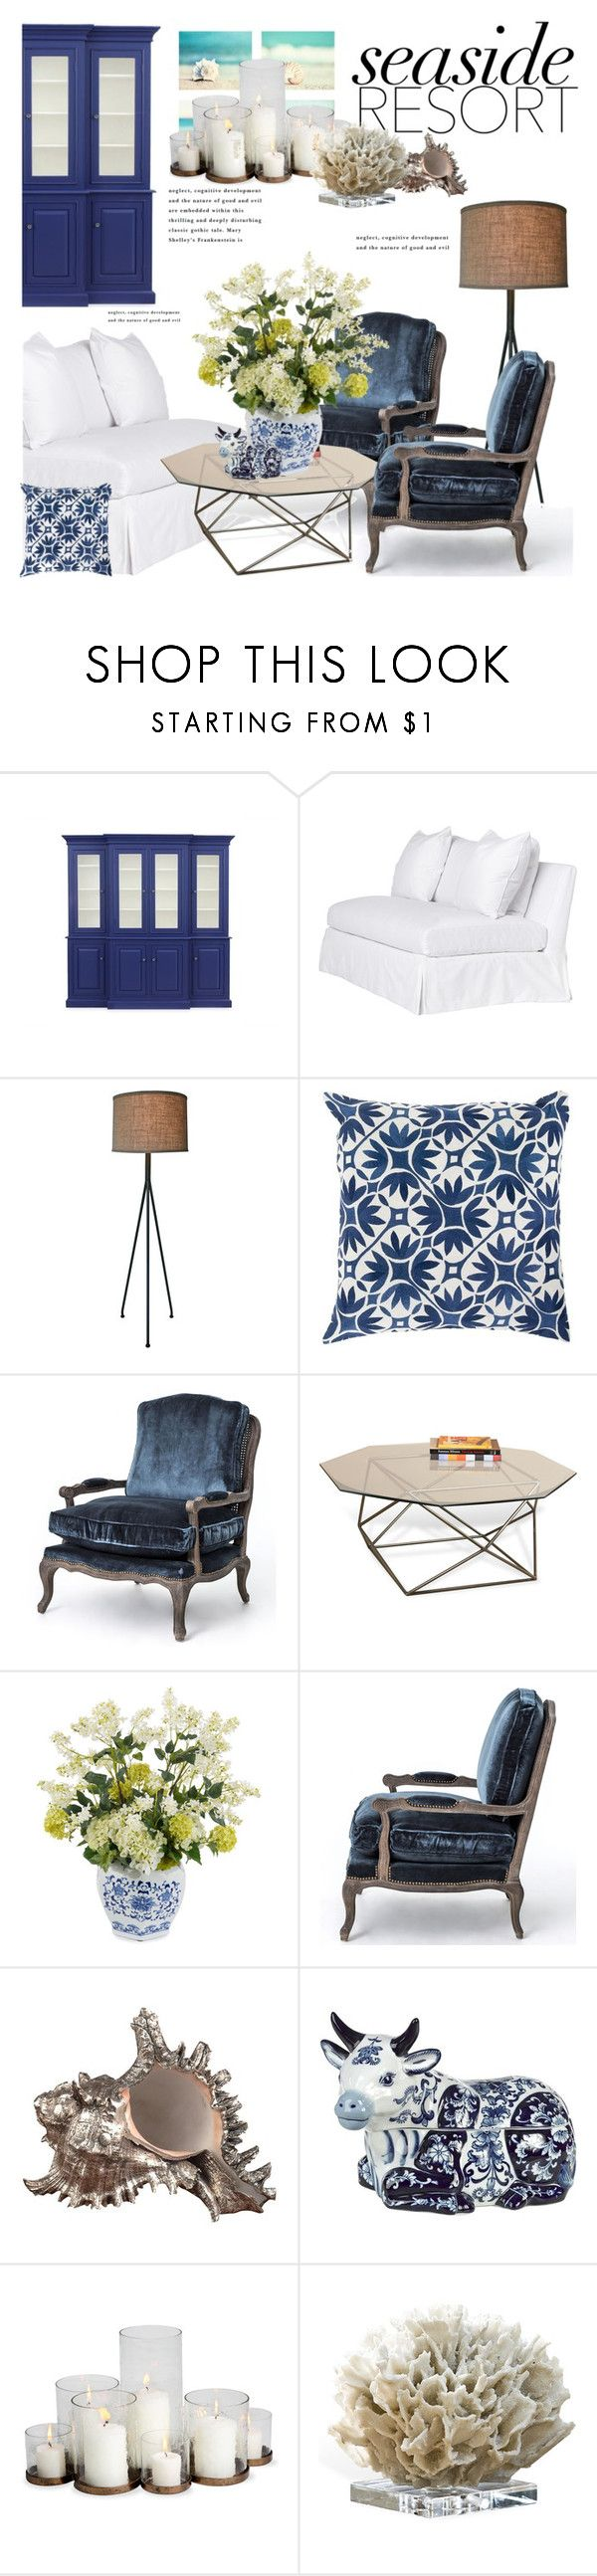 """""""Seaside Resort"""" by janephoto ❤ liked on Polyvore featuring interior, interiors, interior design, home, home decor, interior decorating, Modern Burlap, LG, Pols Potten and WALL"""